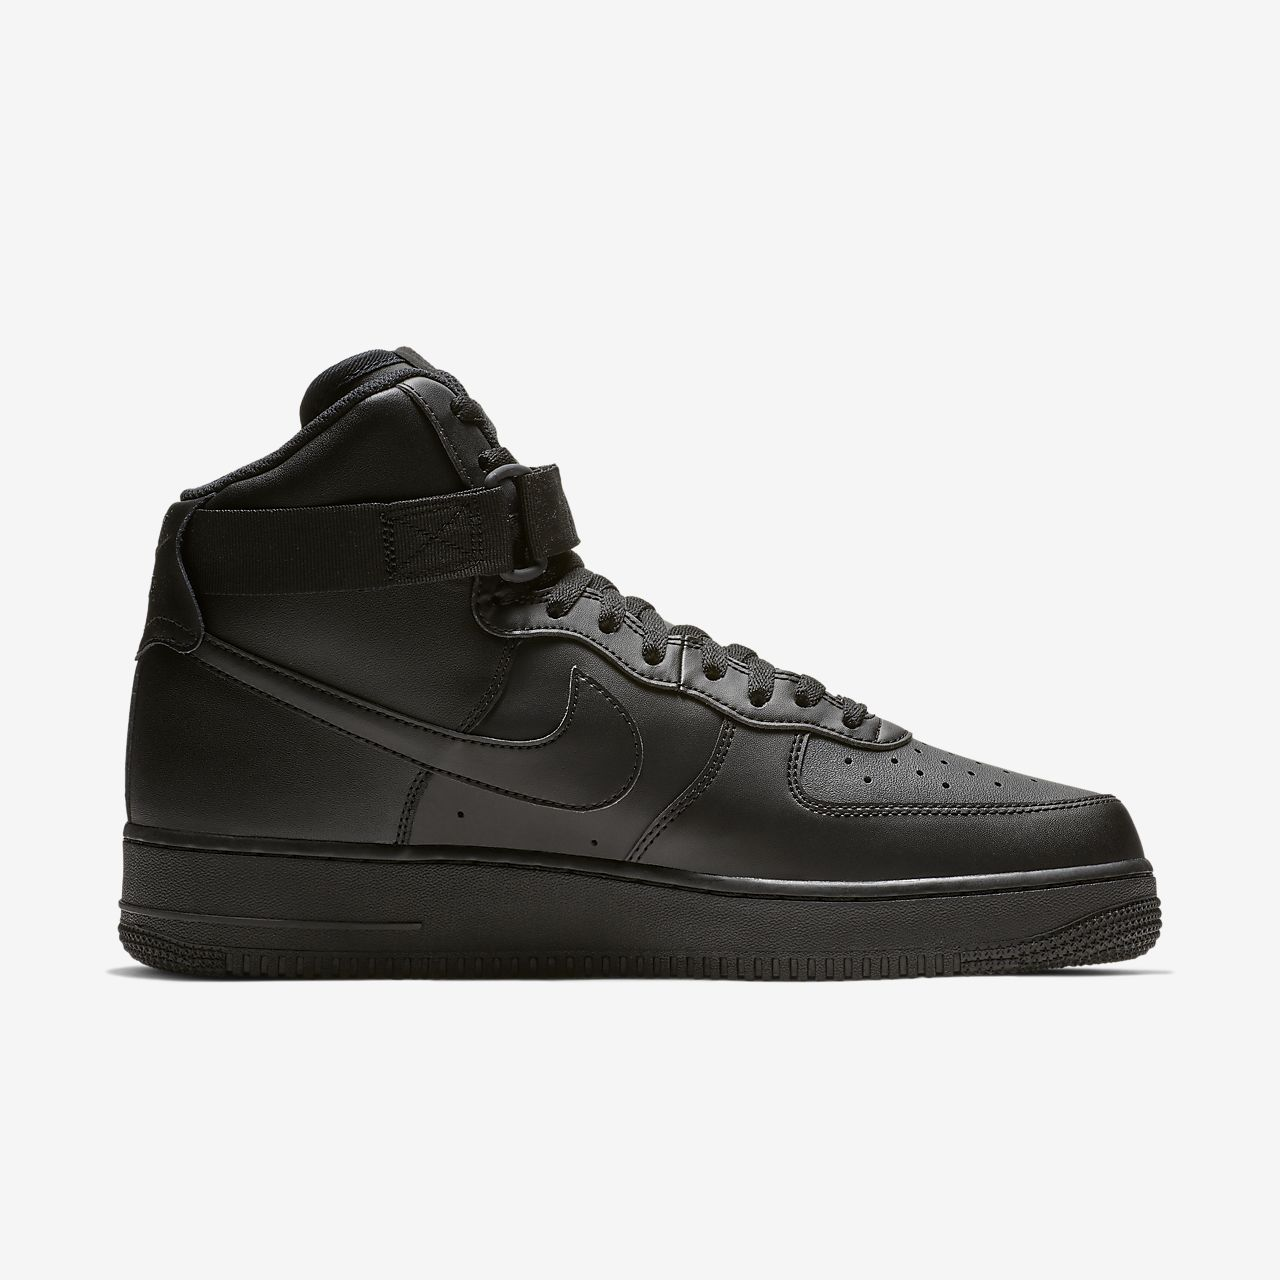 nike air force 1 mid 07 men's hi top trainers girls